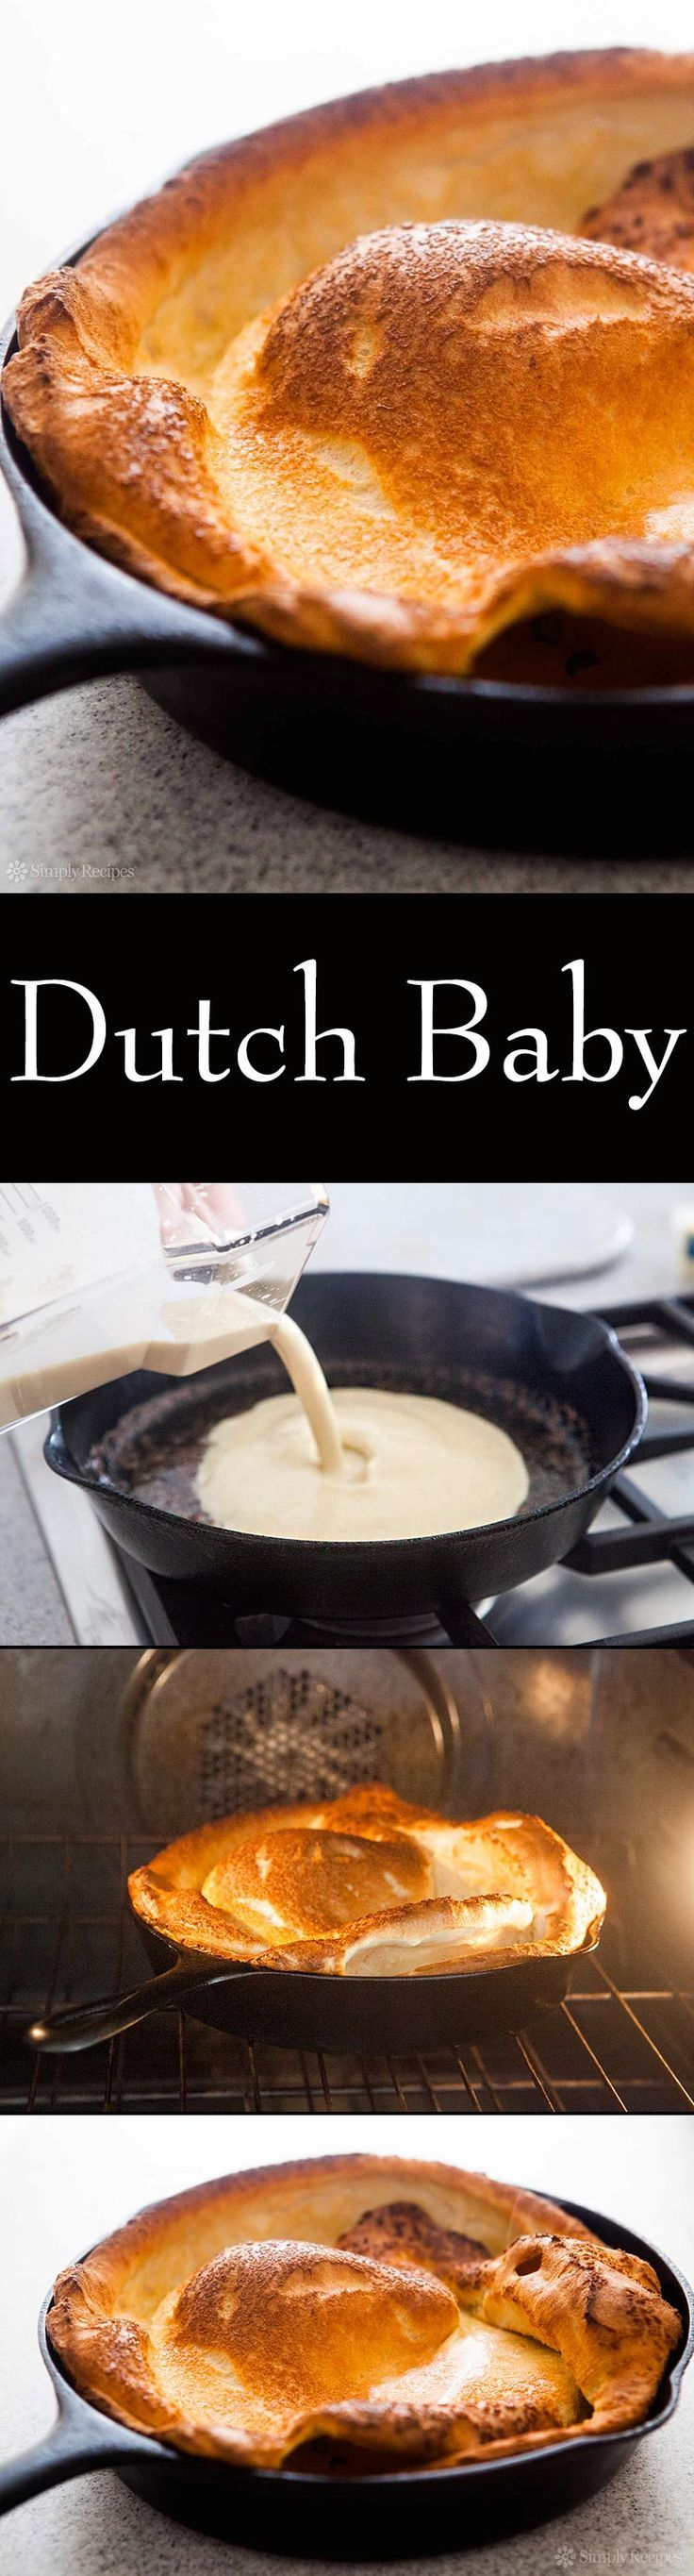 Perfect for breakfast! Dutch Baby aka German pancake. The batter goes into a hot pan and into the oven, puffs up like yorkshire pudding! On SimplyRecipes.com